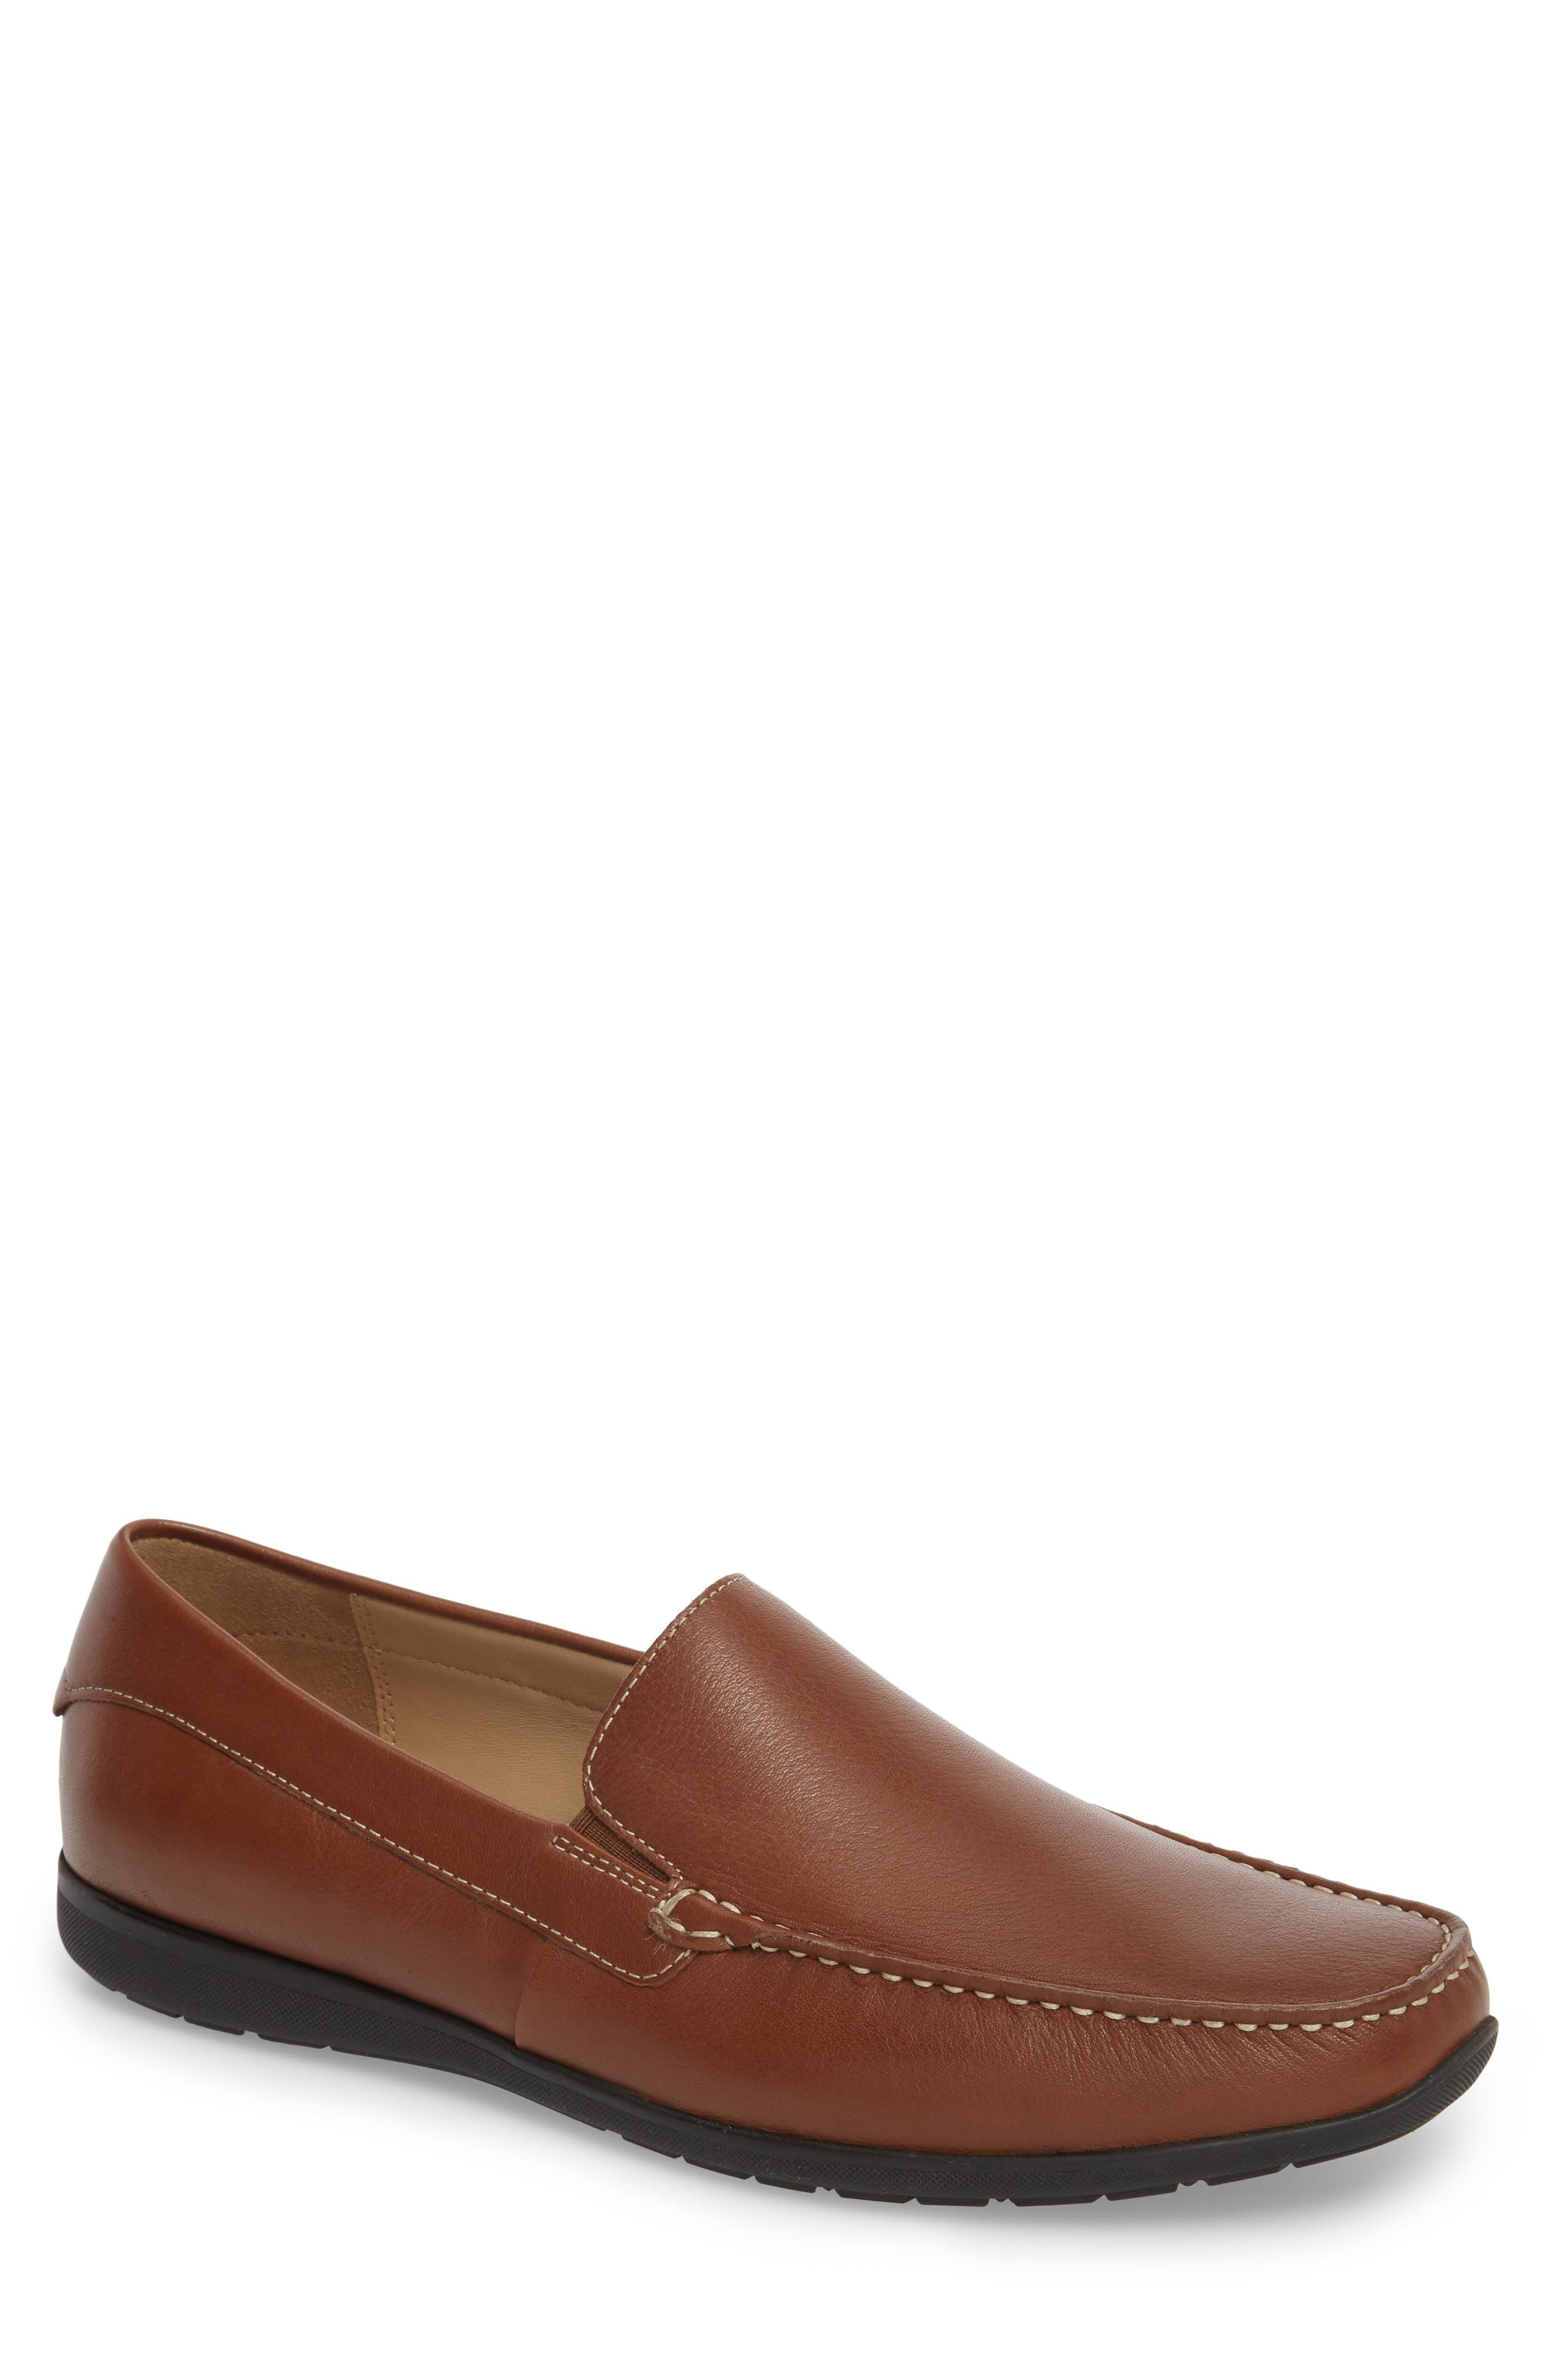 Classic Loafer,                         Main,                         color, Lion